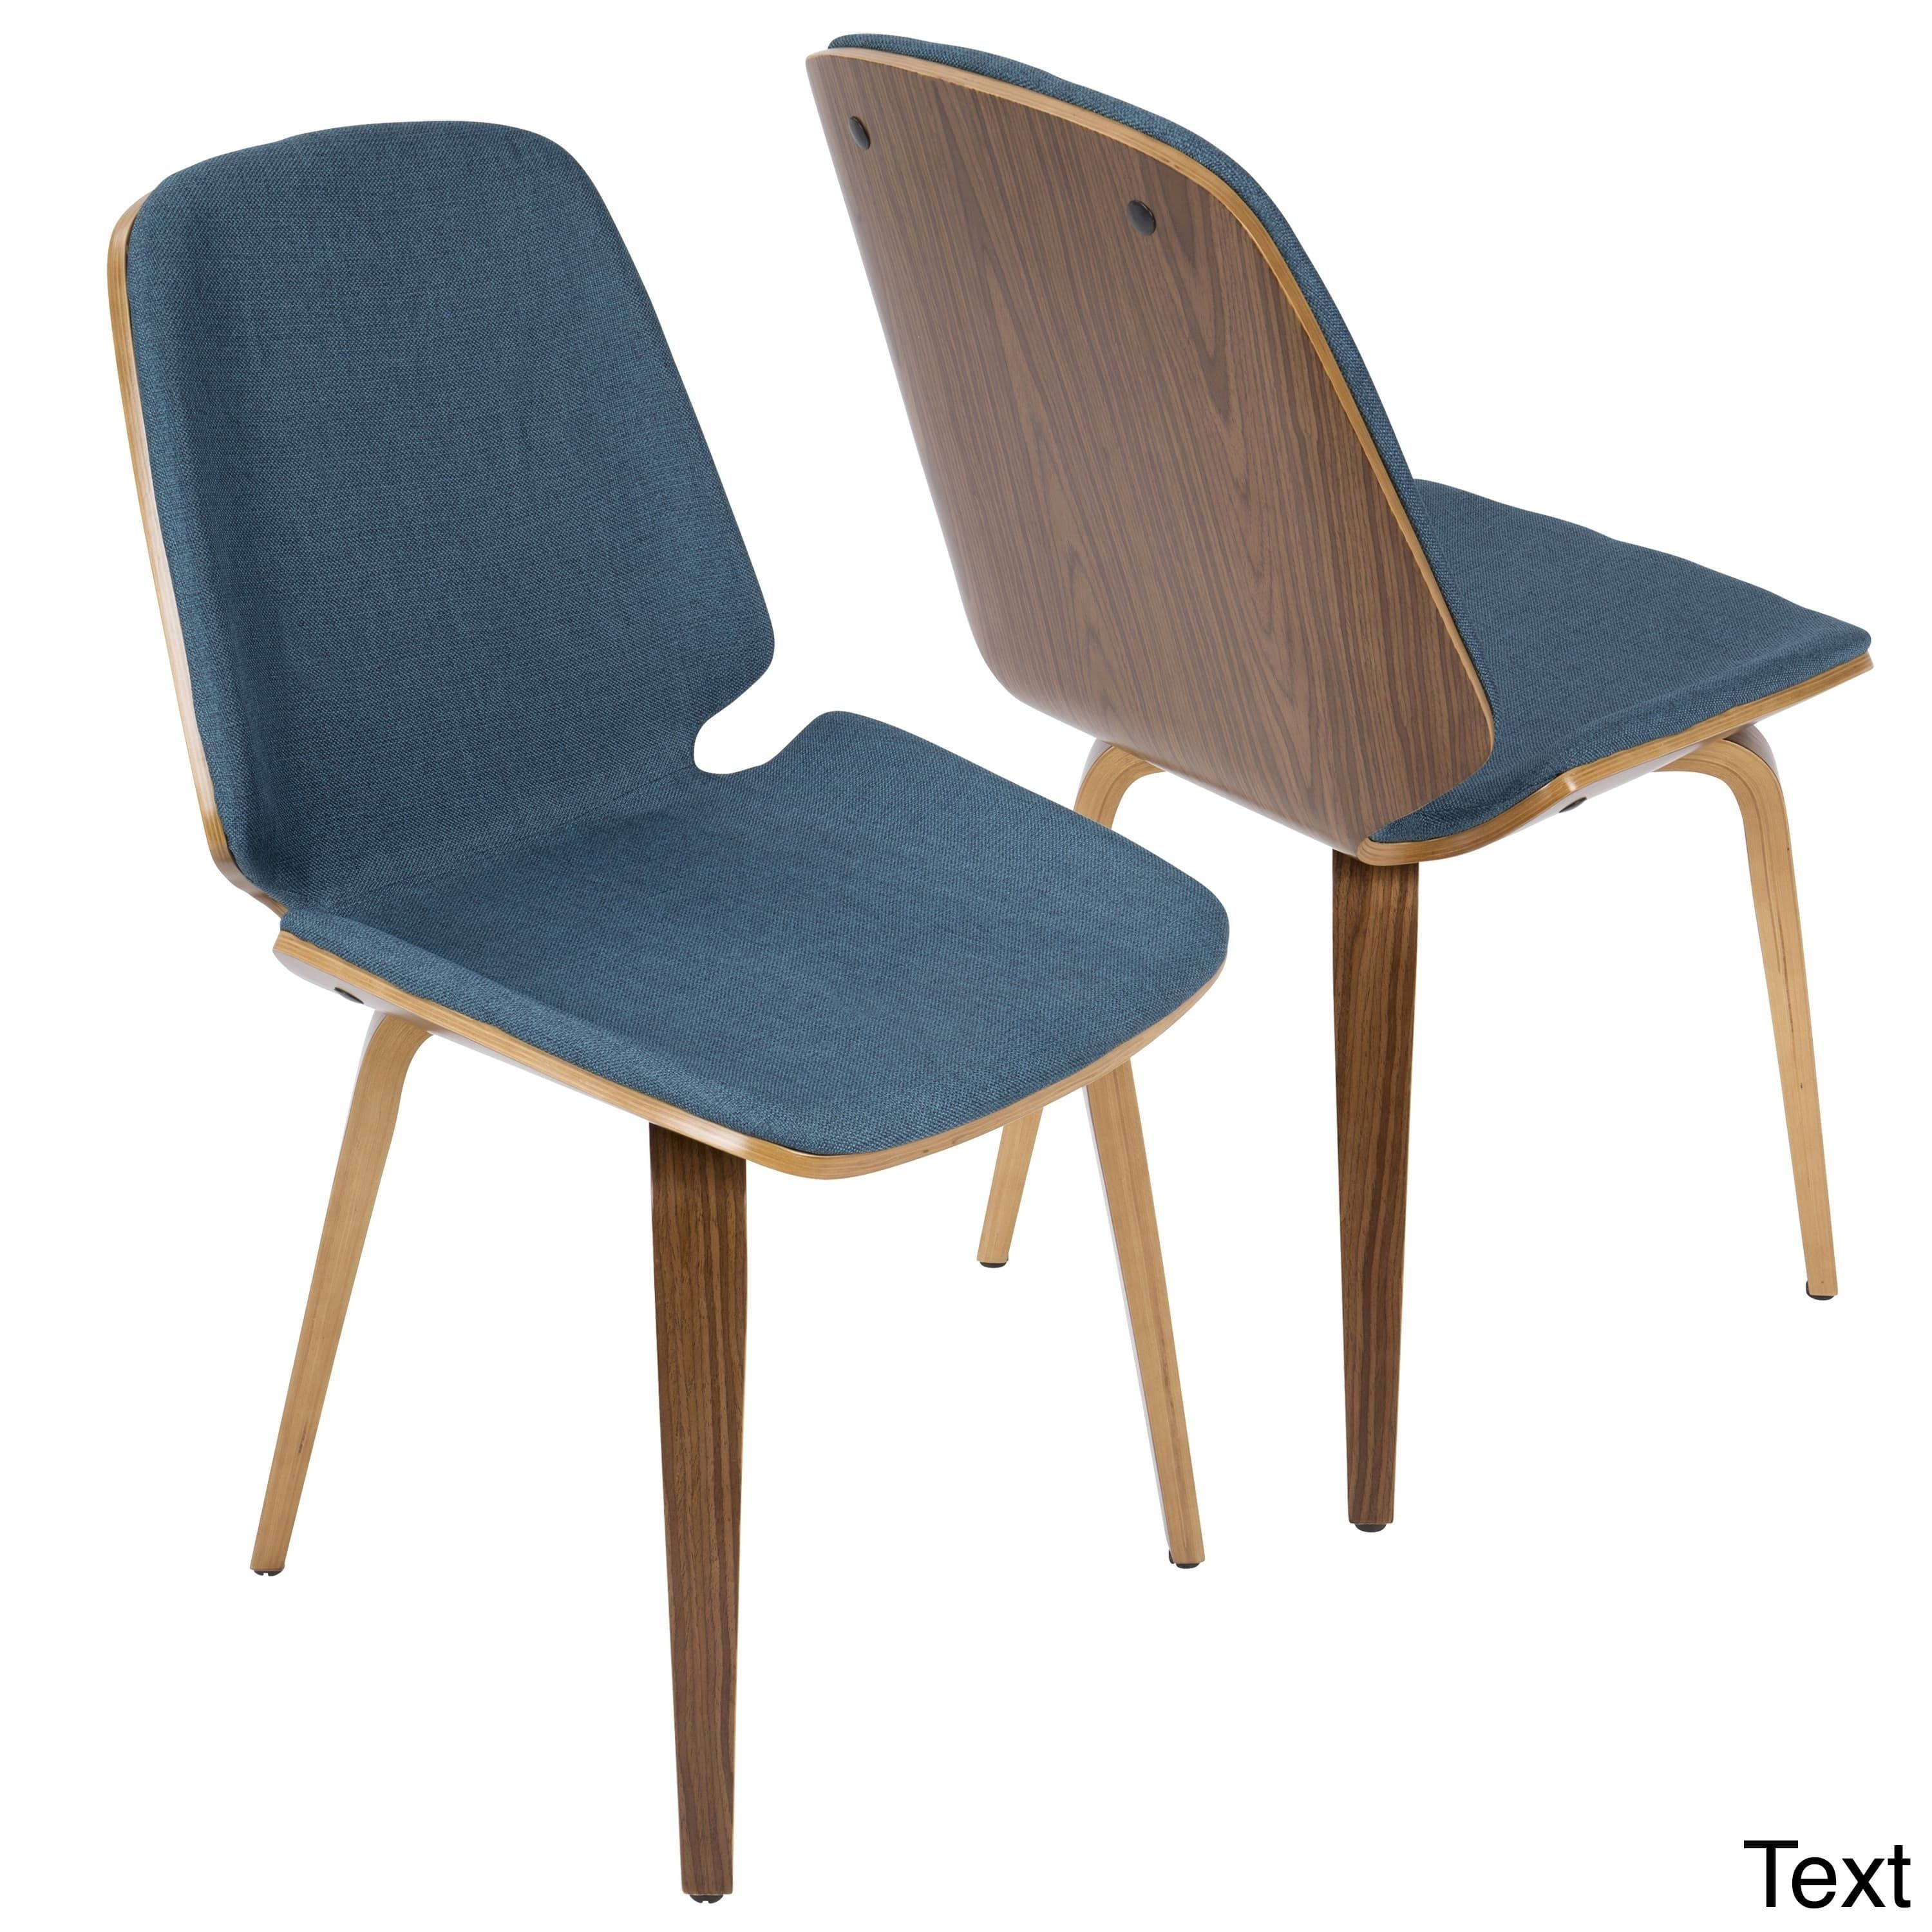 Wondrous Lumisource Serena Walnut Mid Century Modern Dining Chairs Gmtry Best Dining Table And Chair Ideas Images Gmtryco